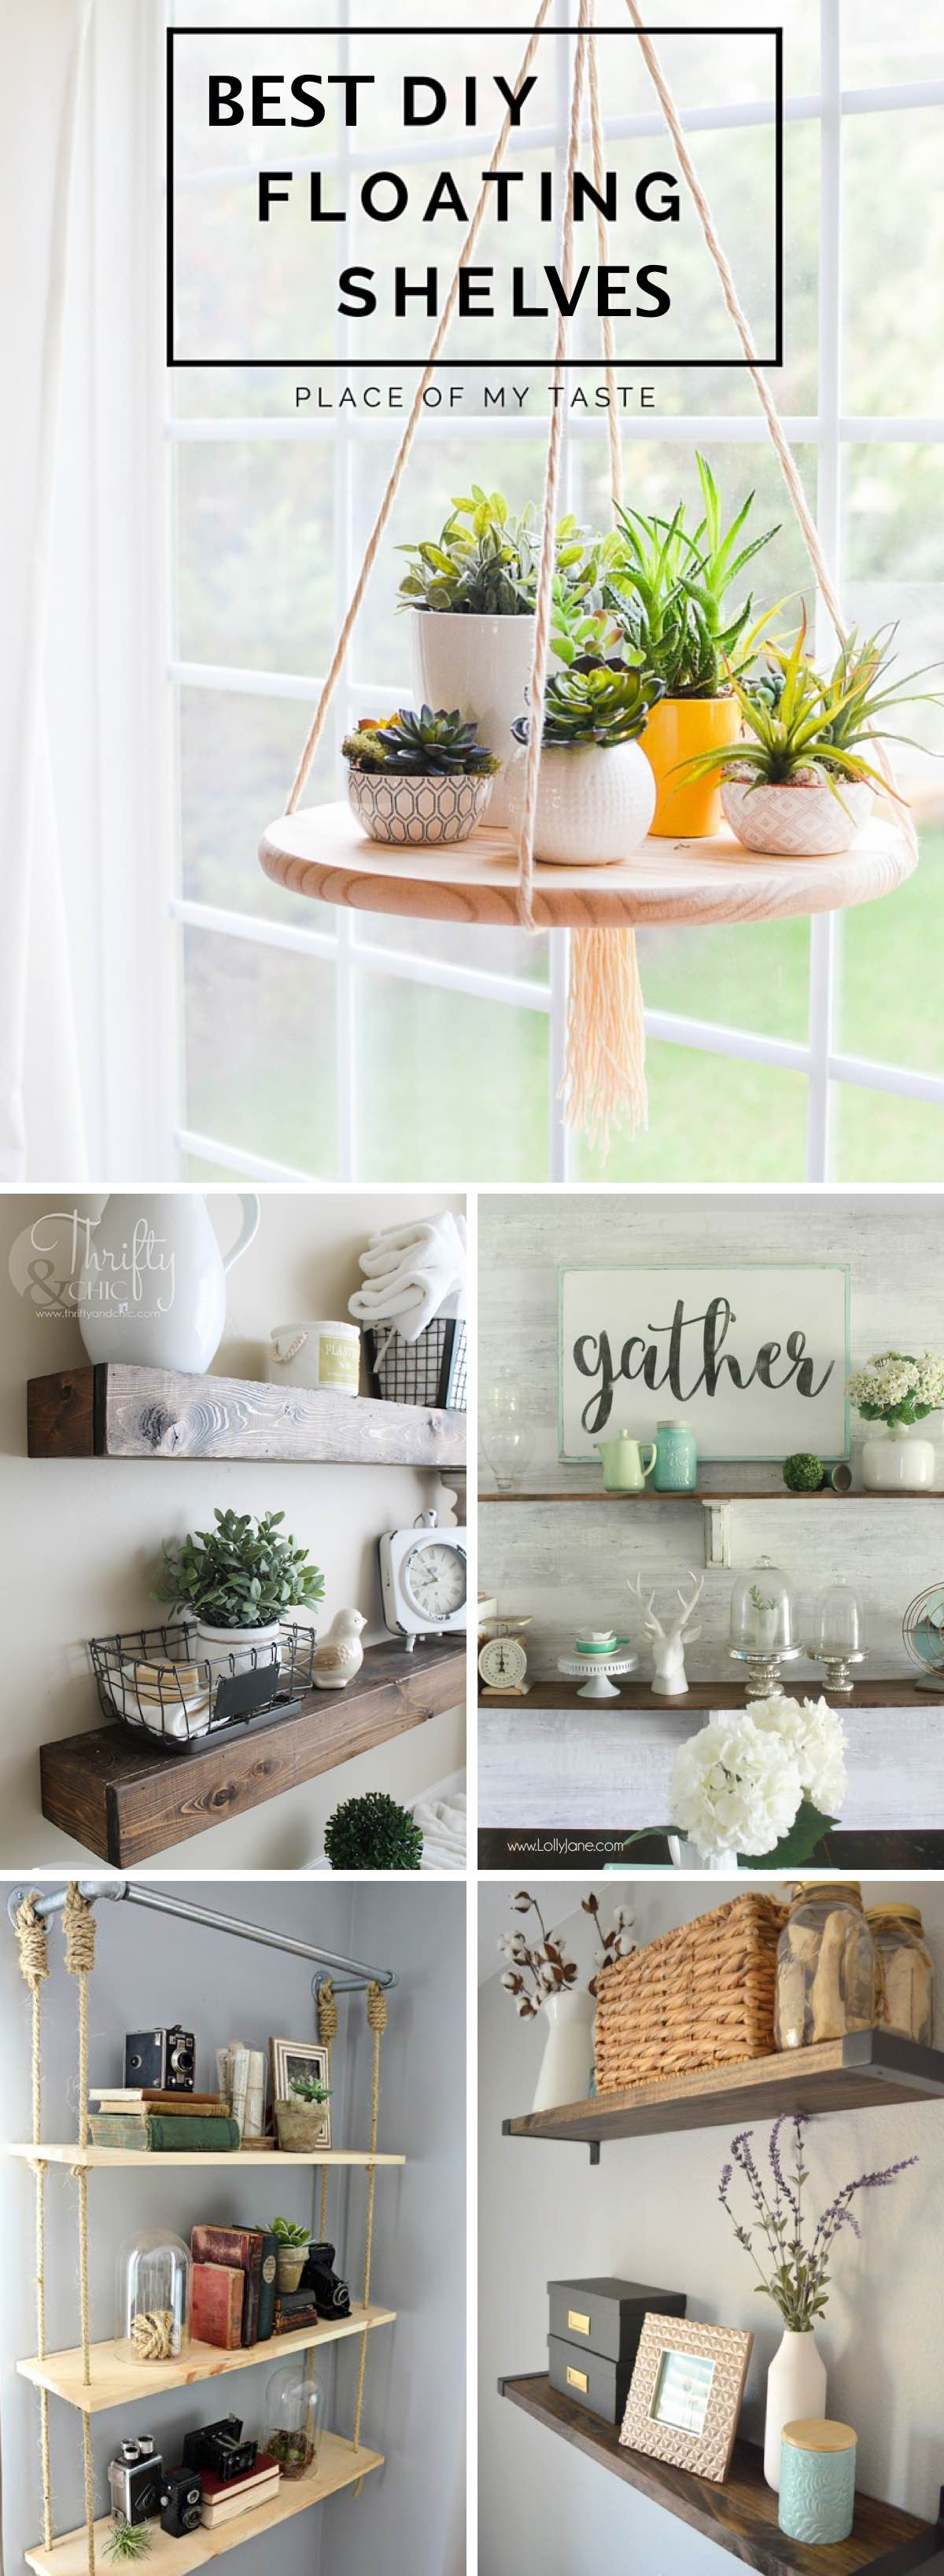 best diy shelves